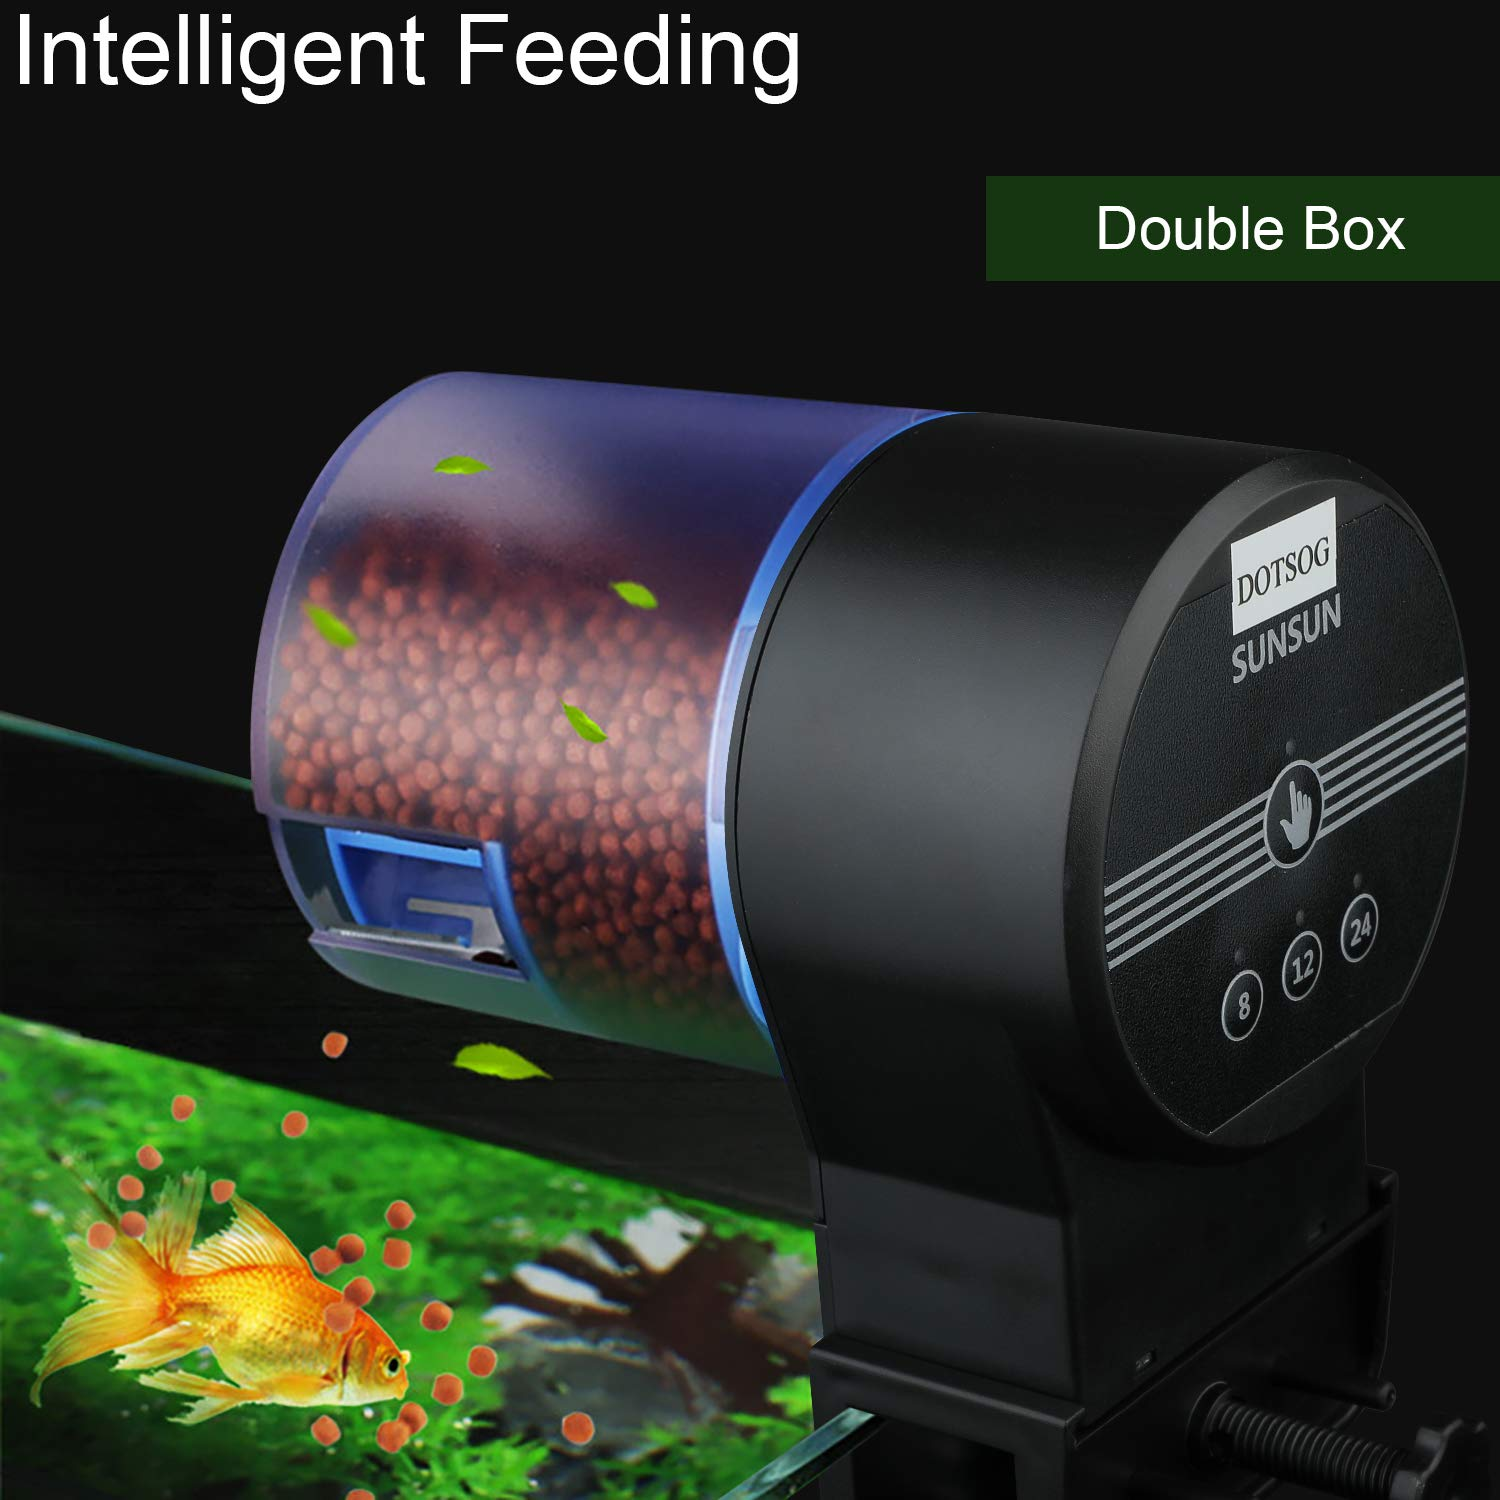 DOTSOG Digital Automatic Fish Feeder - Rechargeable Timer Fish Feeder with USB Charger Cable, Fish Food Dispenser for Aquarium or Fish Tank by DOTSOG (Image #7)